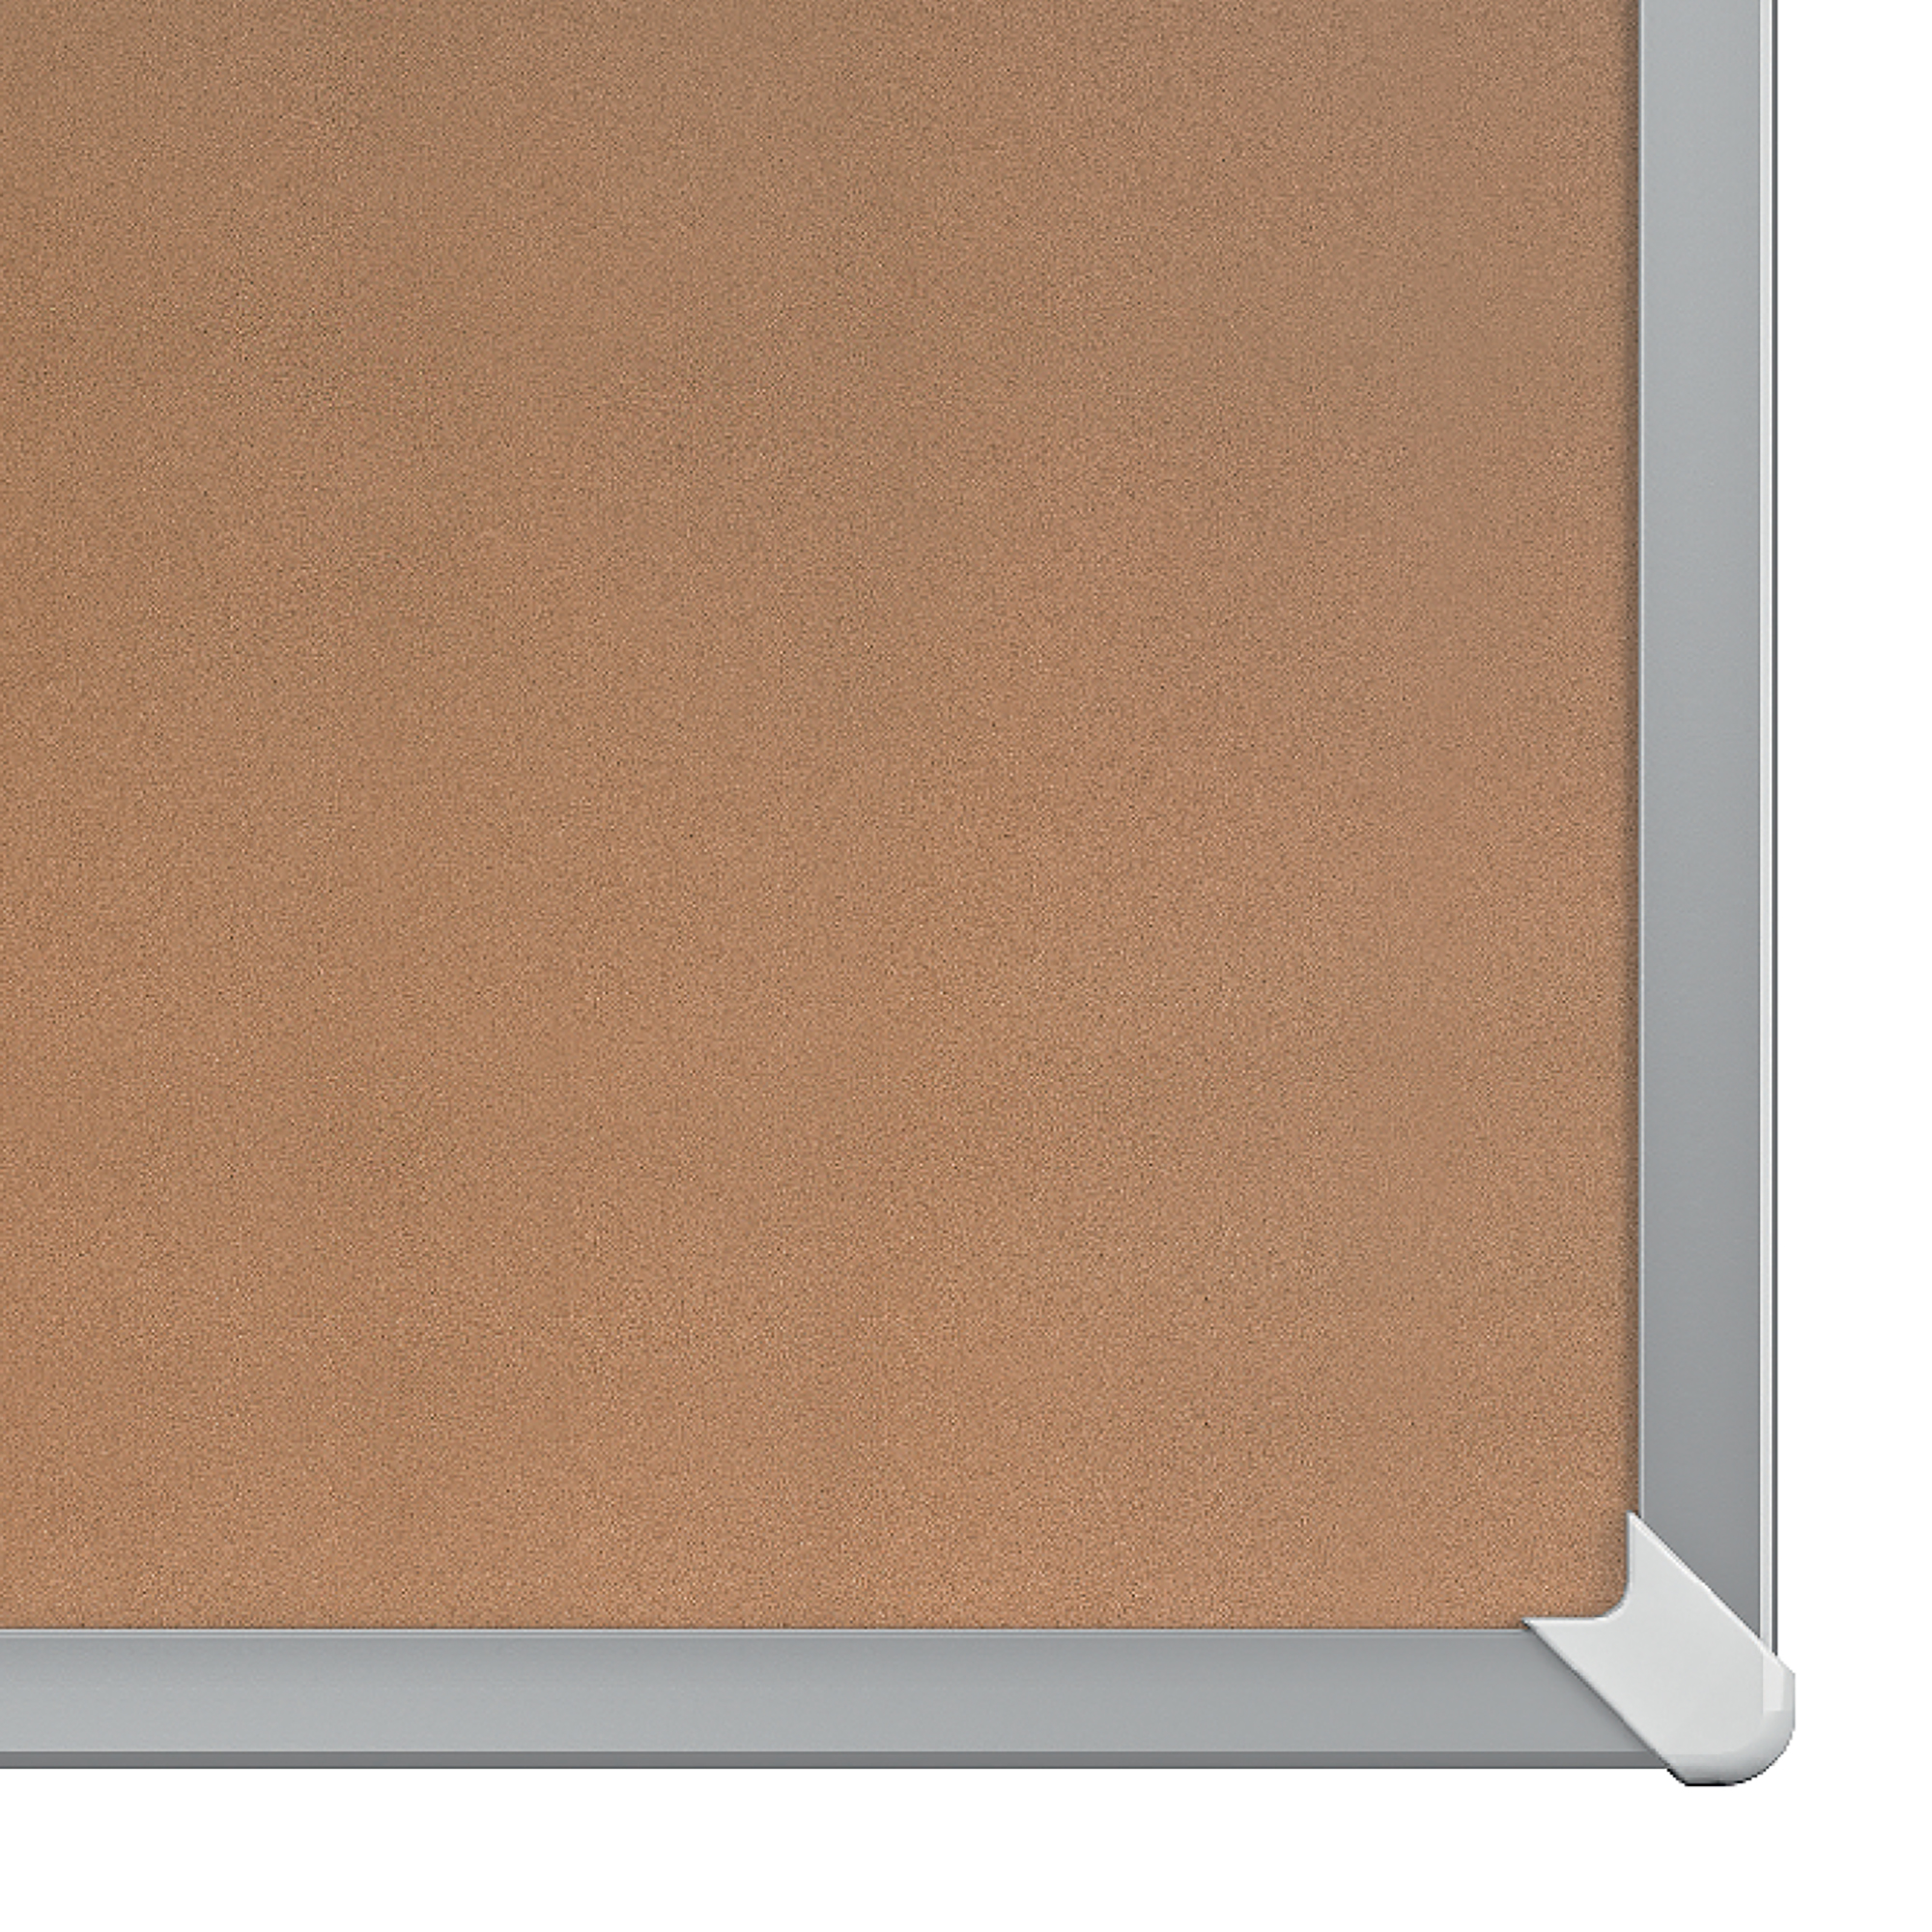 Bulletin boards or accessories Nobo 40 inch Widescreen Cork Notice Board 890x500mm Ref 1905307